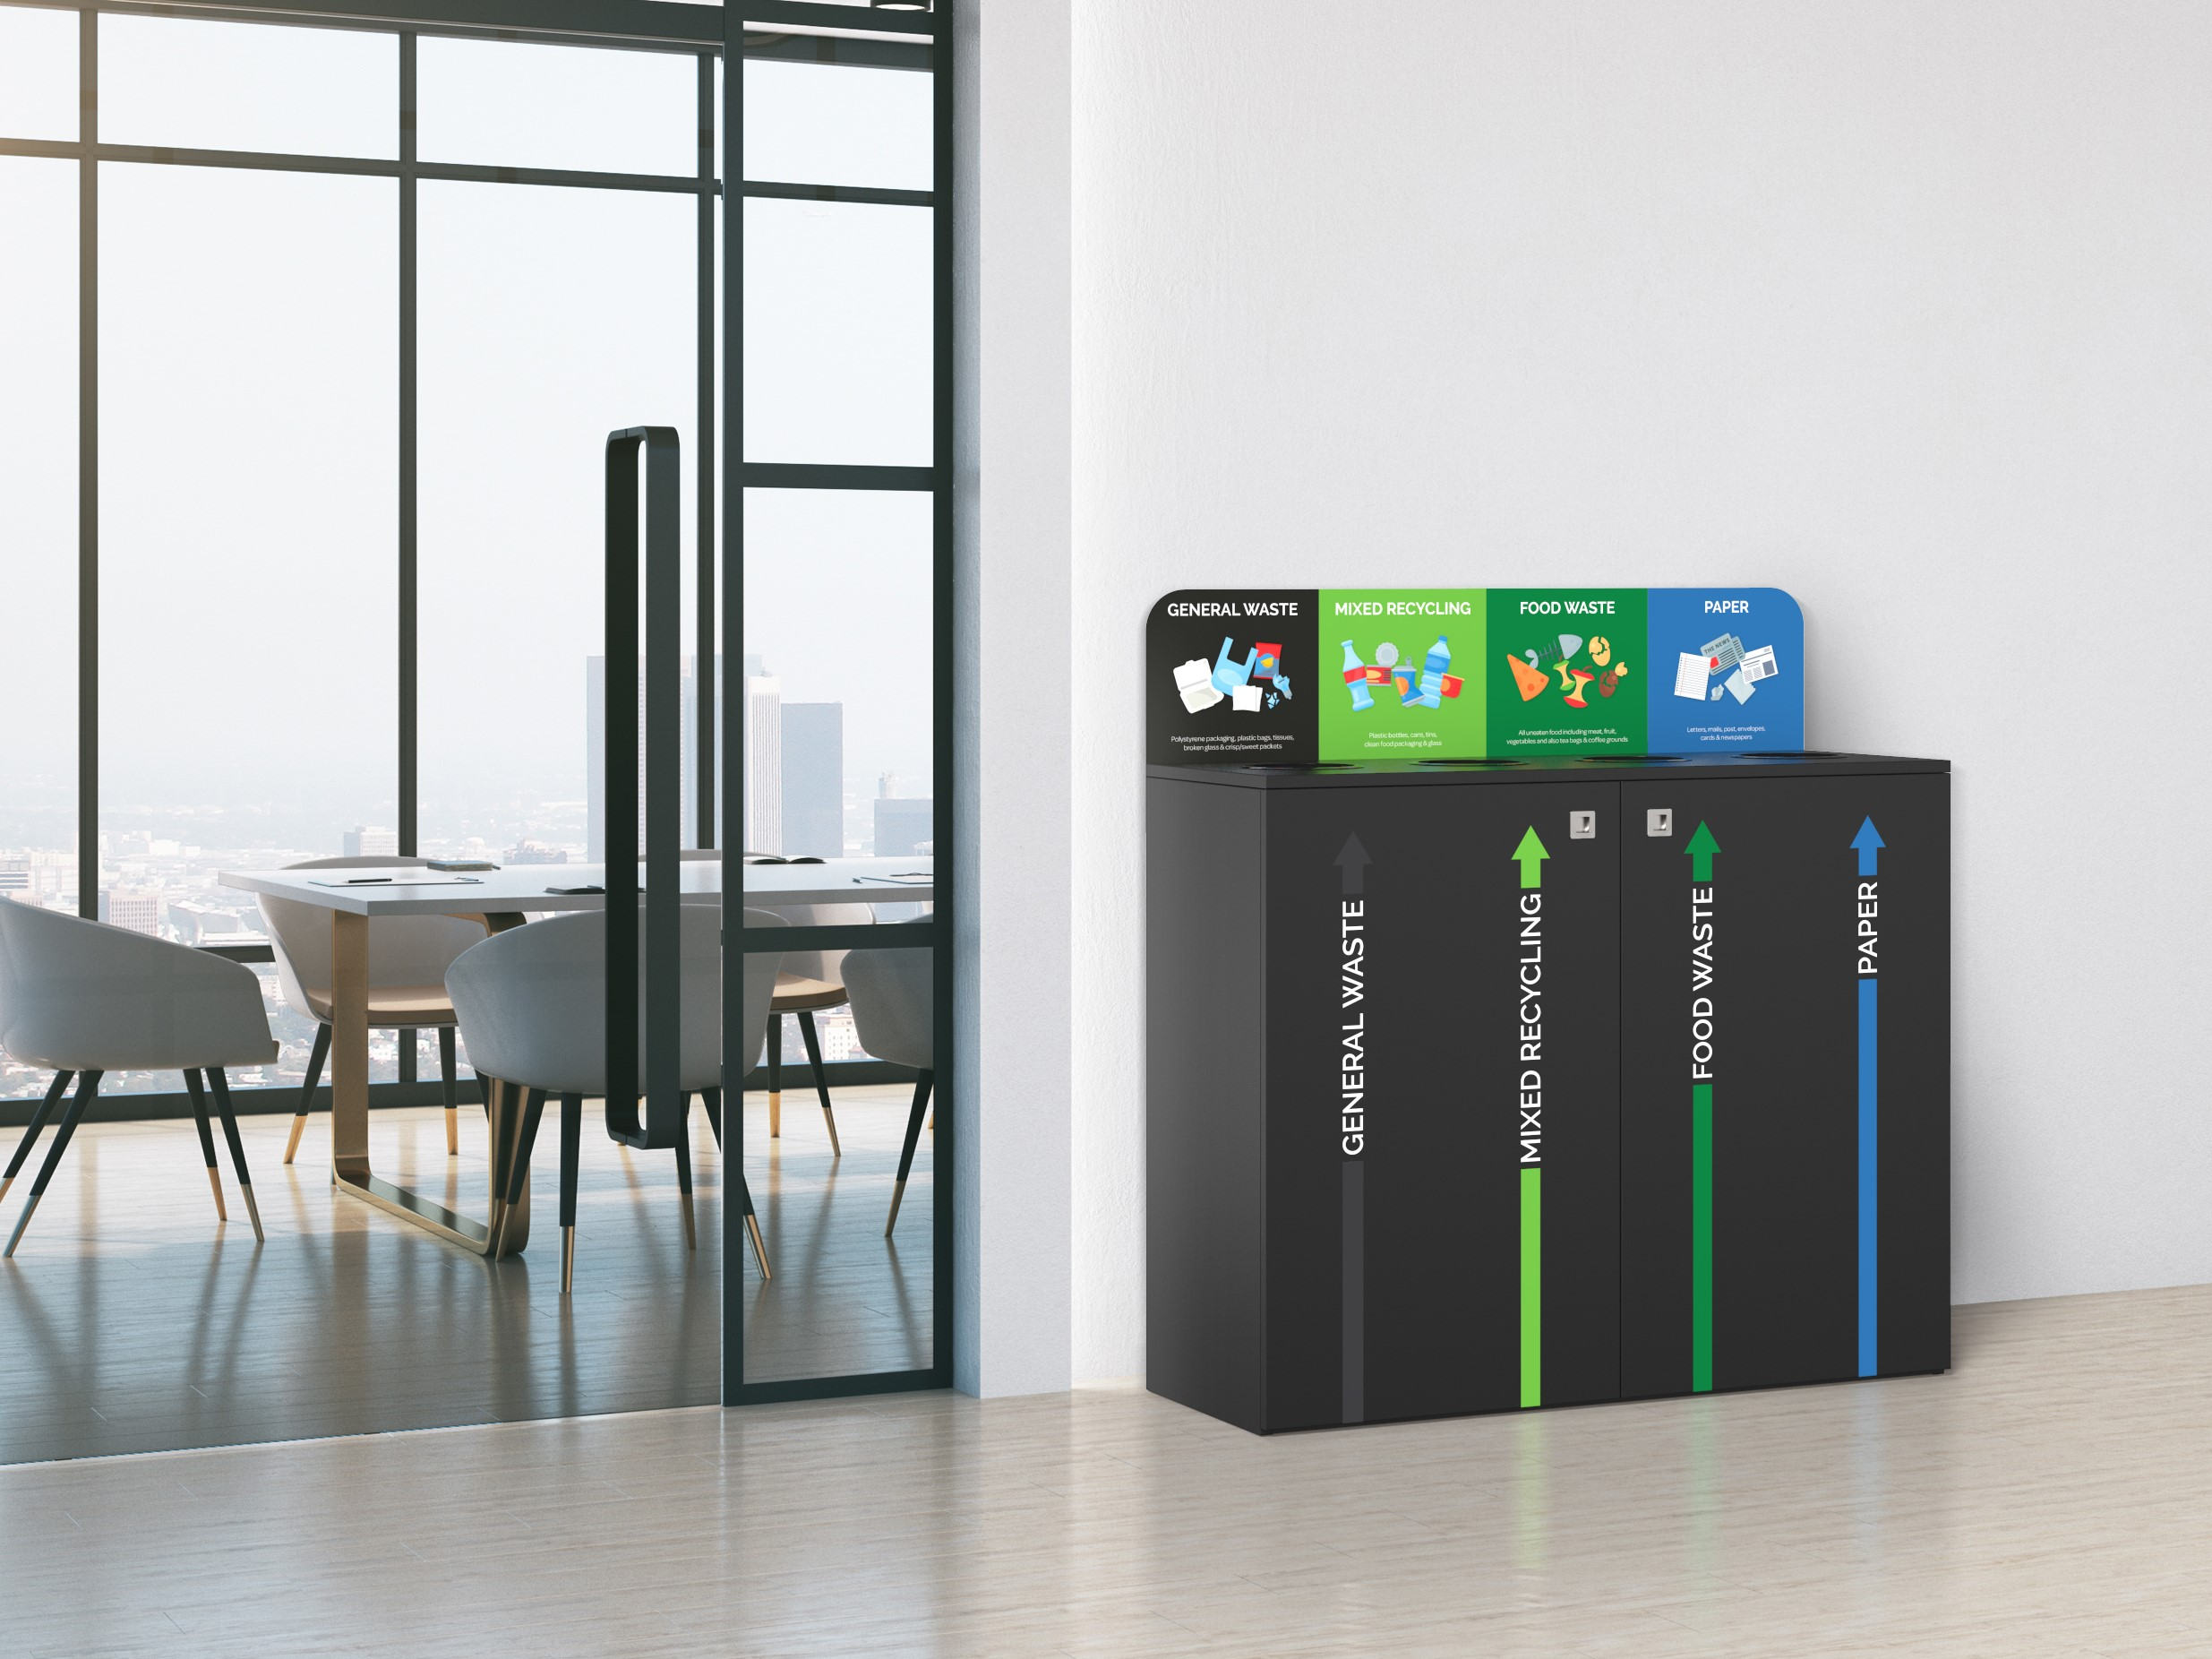 recycling bin station with colourful graphics